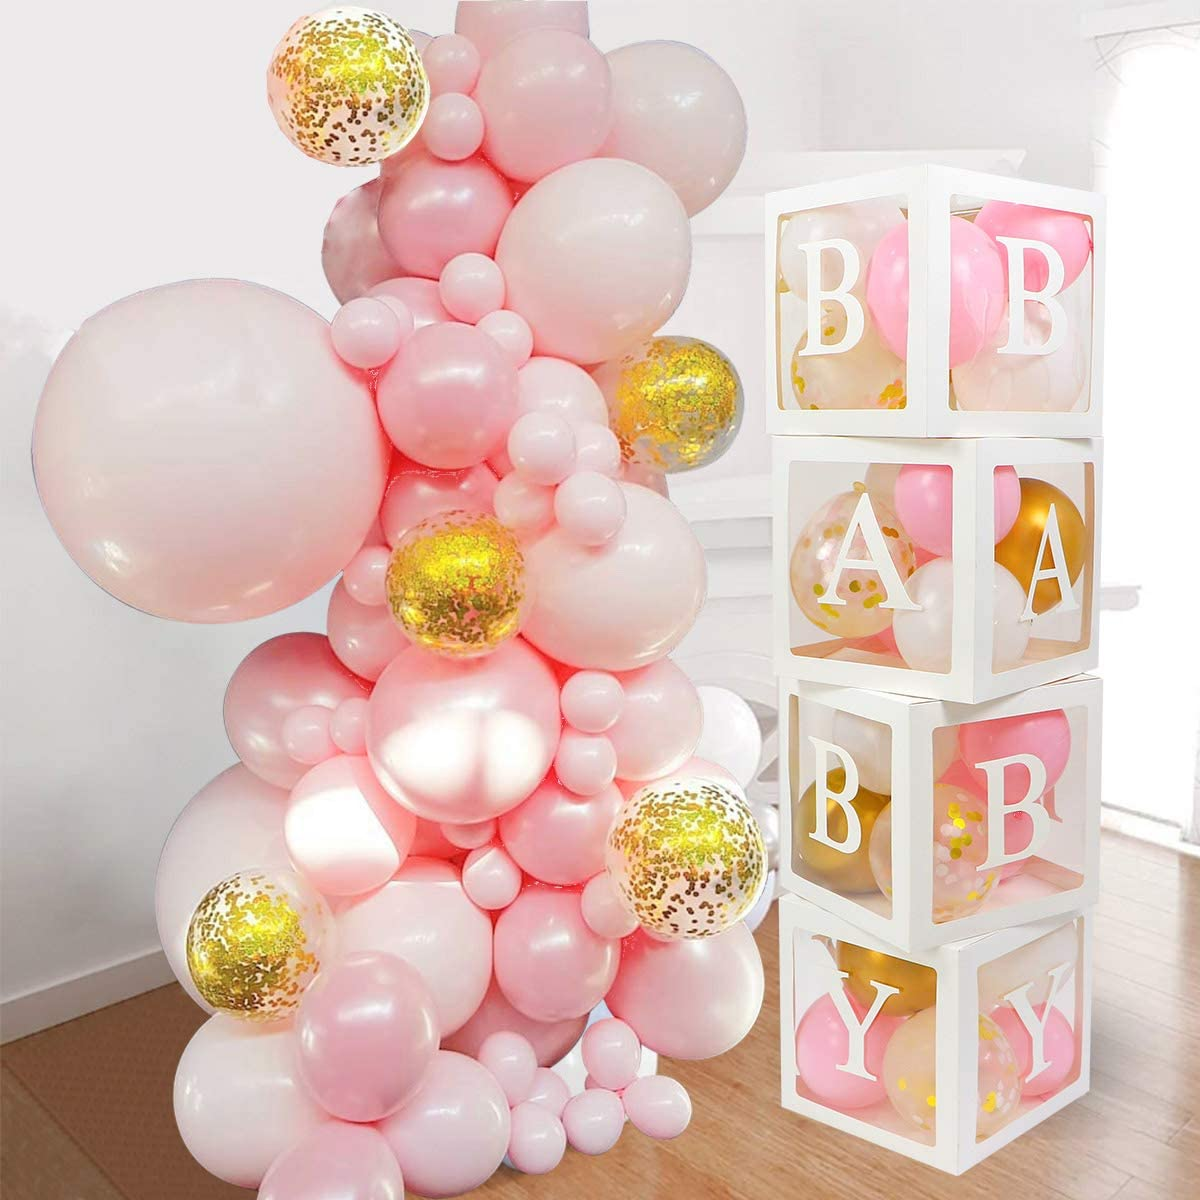 Baby Shower Decorations for Girl - 52pcs Jumbo Transparent Baby Block Balloon Box Includes White, Pastel Pink, Gold and Confetti Balloons | Perfect for Gender Reveal Decor, 1st Birthday Party, Newborn Photos, Baptisms, Pregnancy Announcements